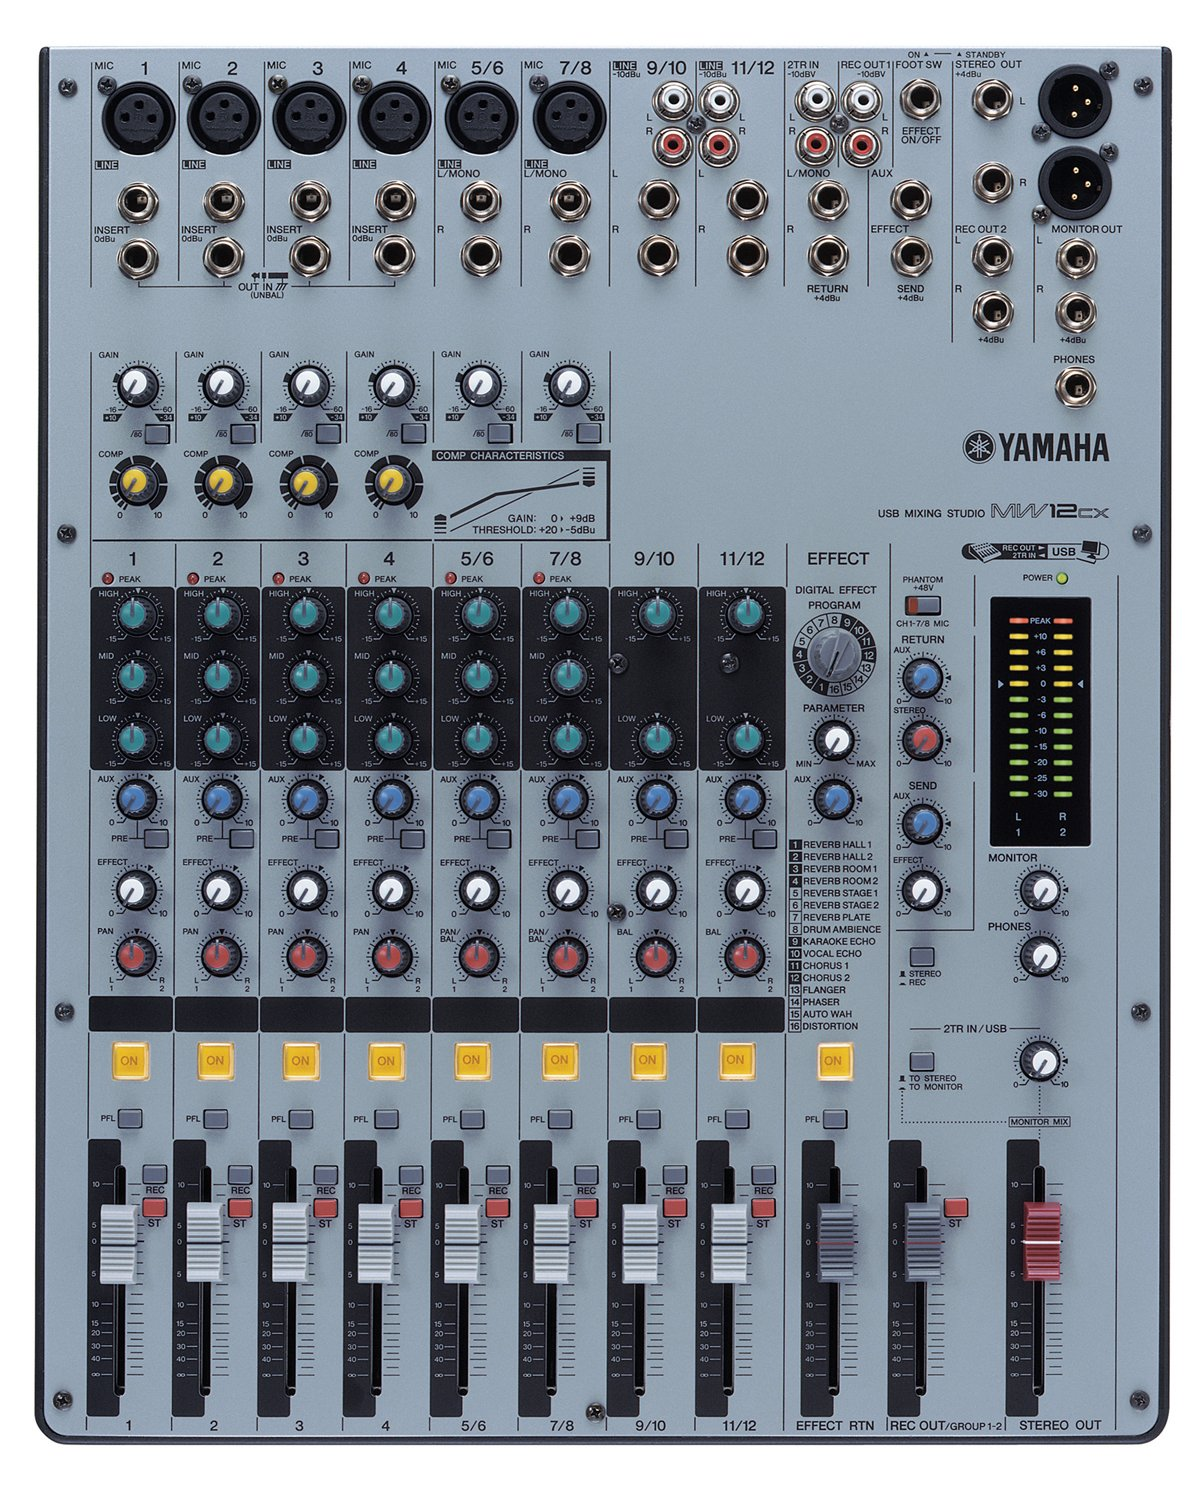 Yamaha MW12CX USB Mixing Studio reviews buy using info other related content